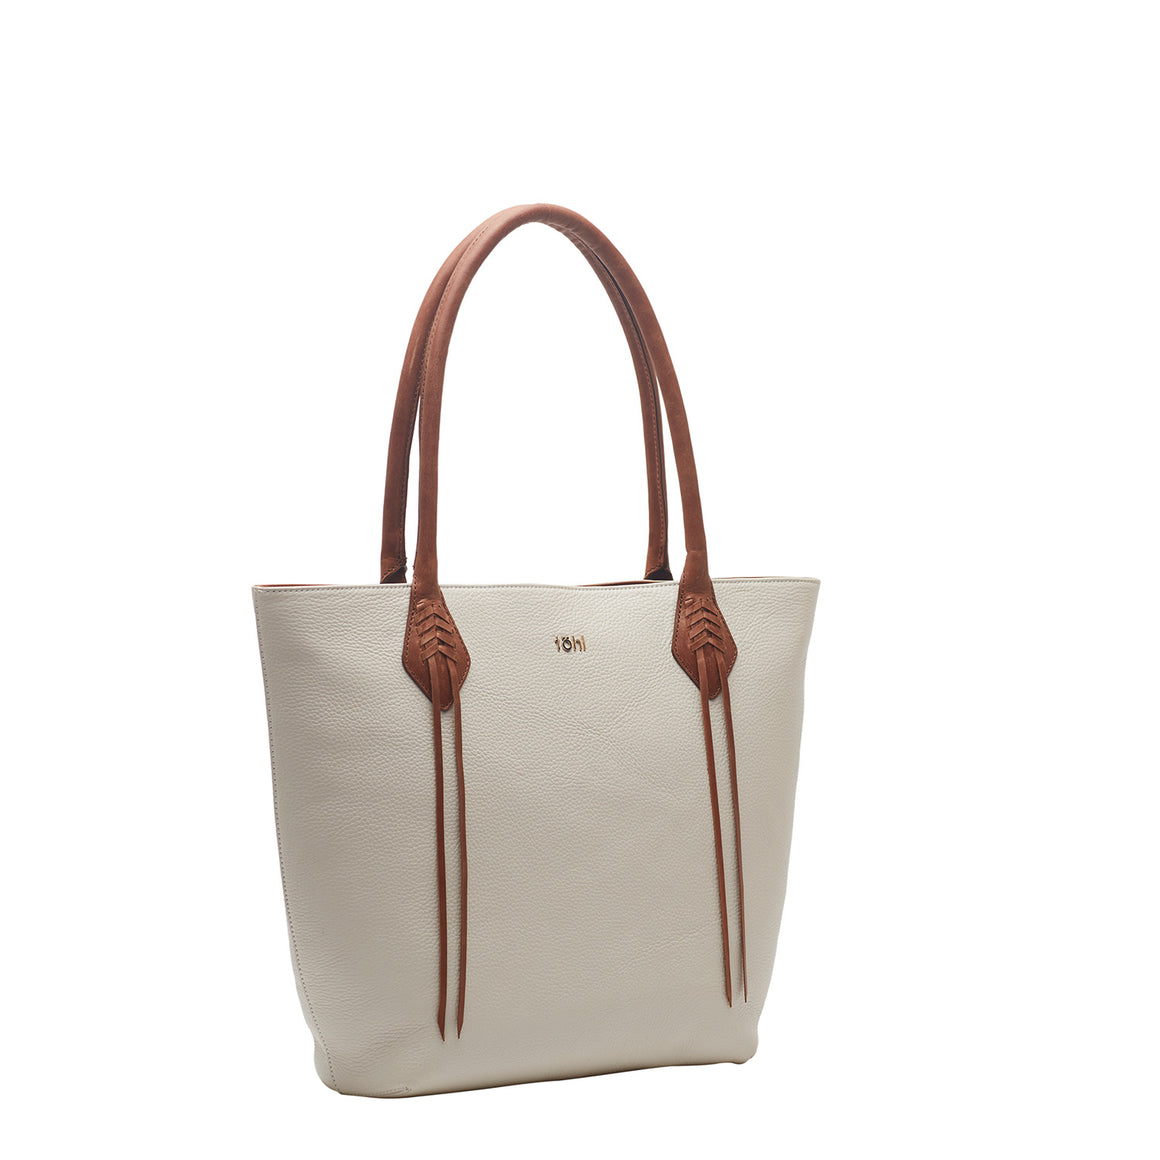 TT 0009 - TOHL KIFFEN WOMEN'S TOTES & BUCKET BAG - WHITE